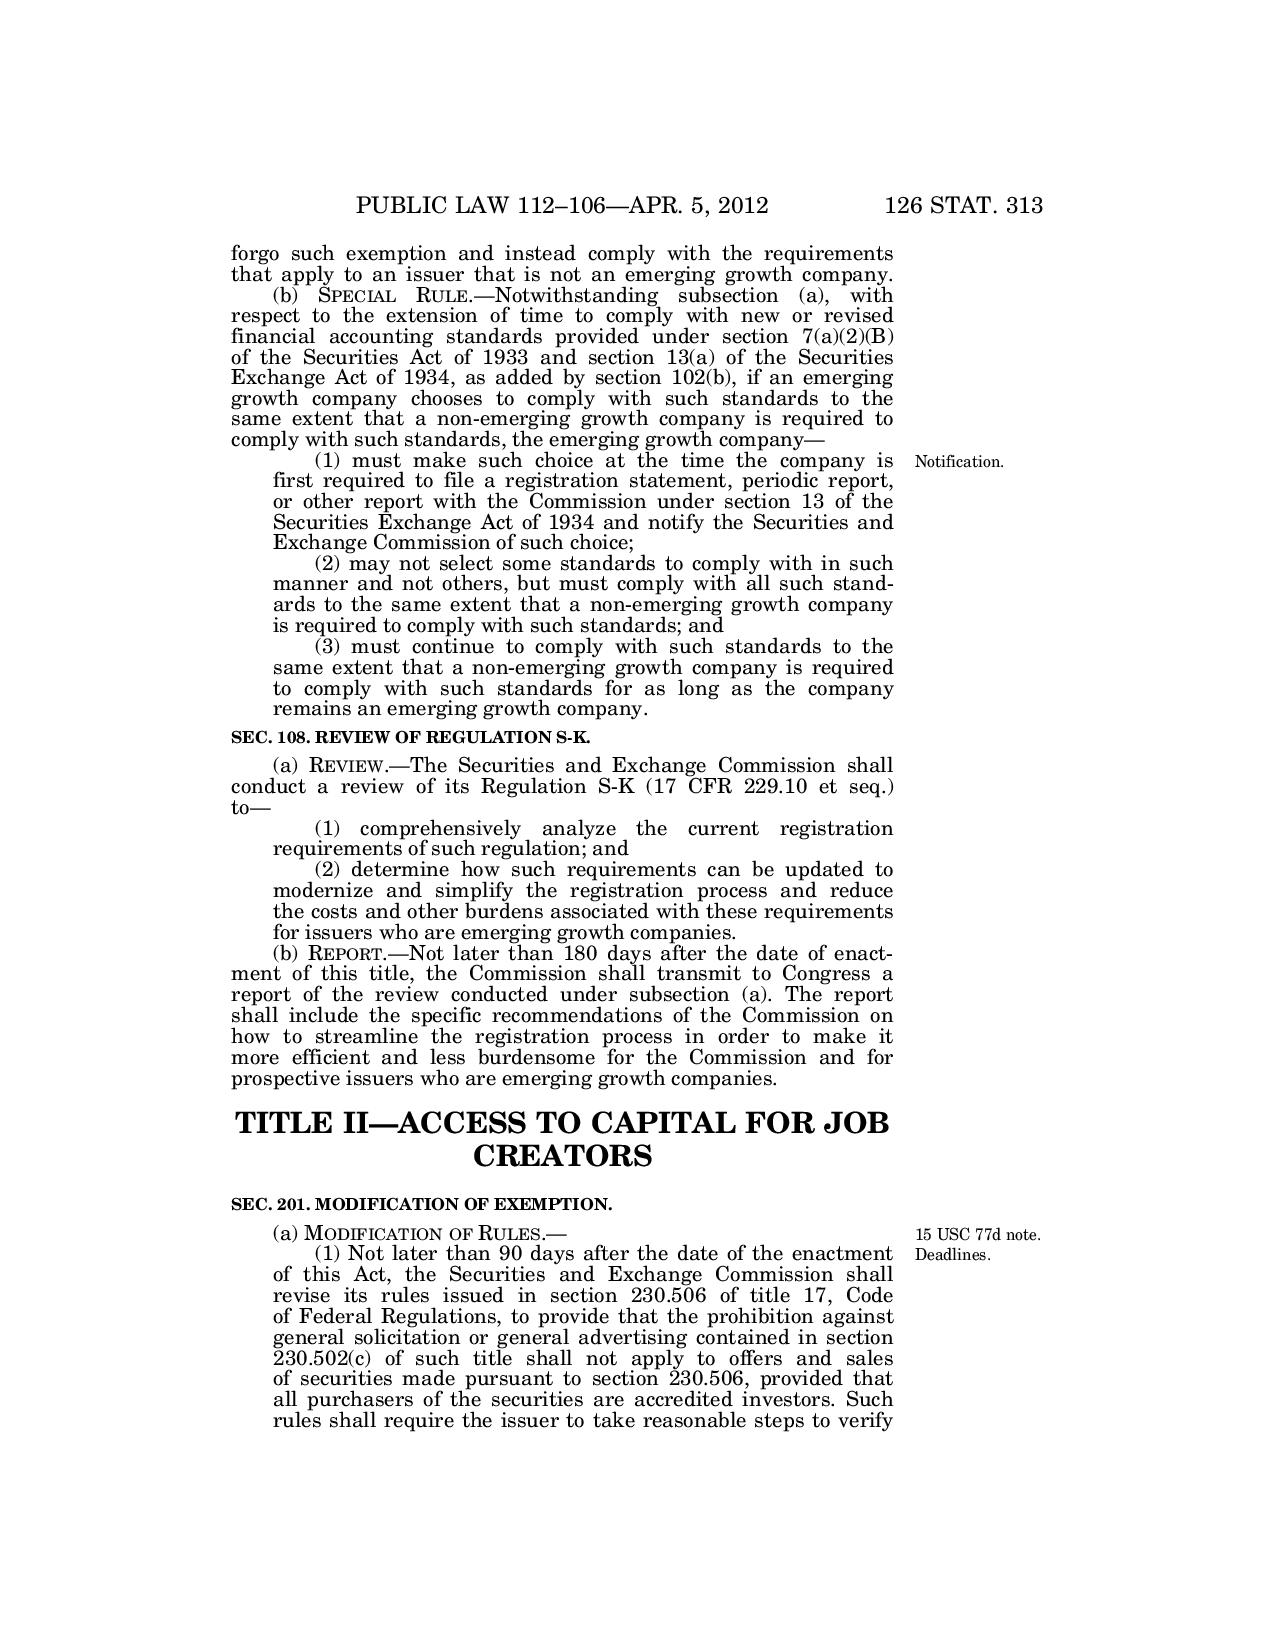 331653864-The-Jumpstart-Our-Business-Startups-Act-JOBS-Act-April-5-of-2012-page-009.jpg